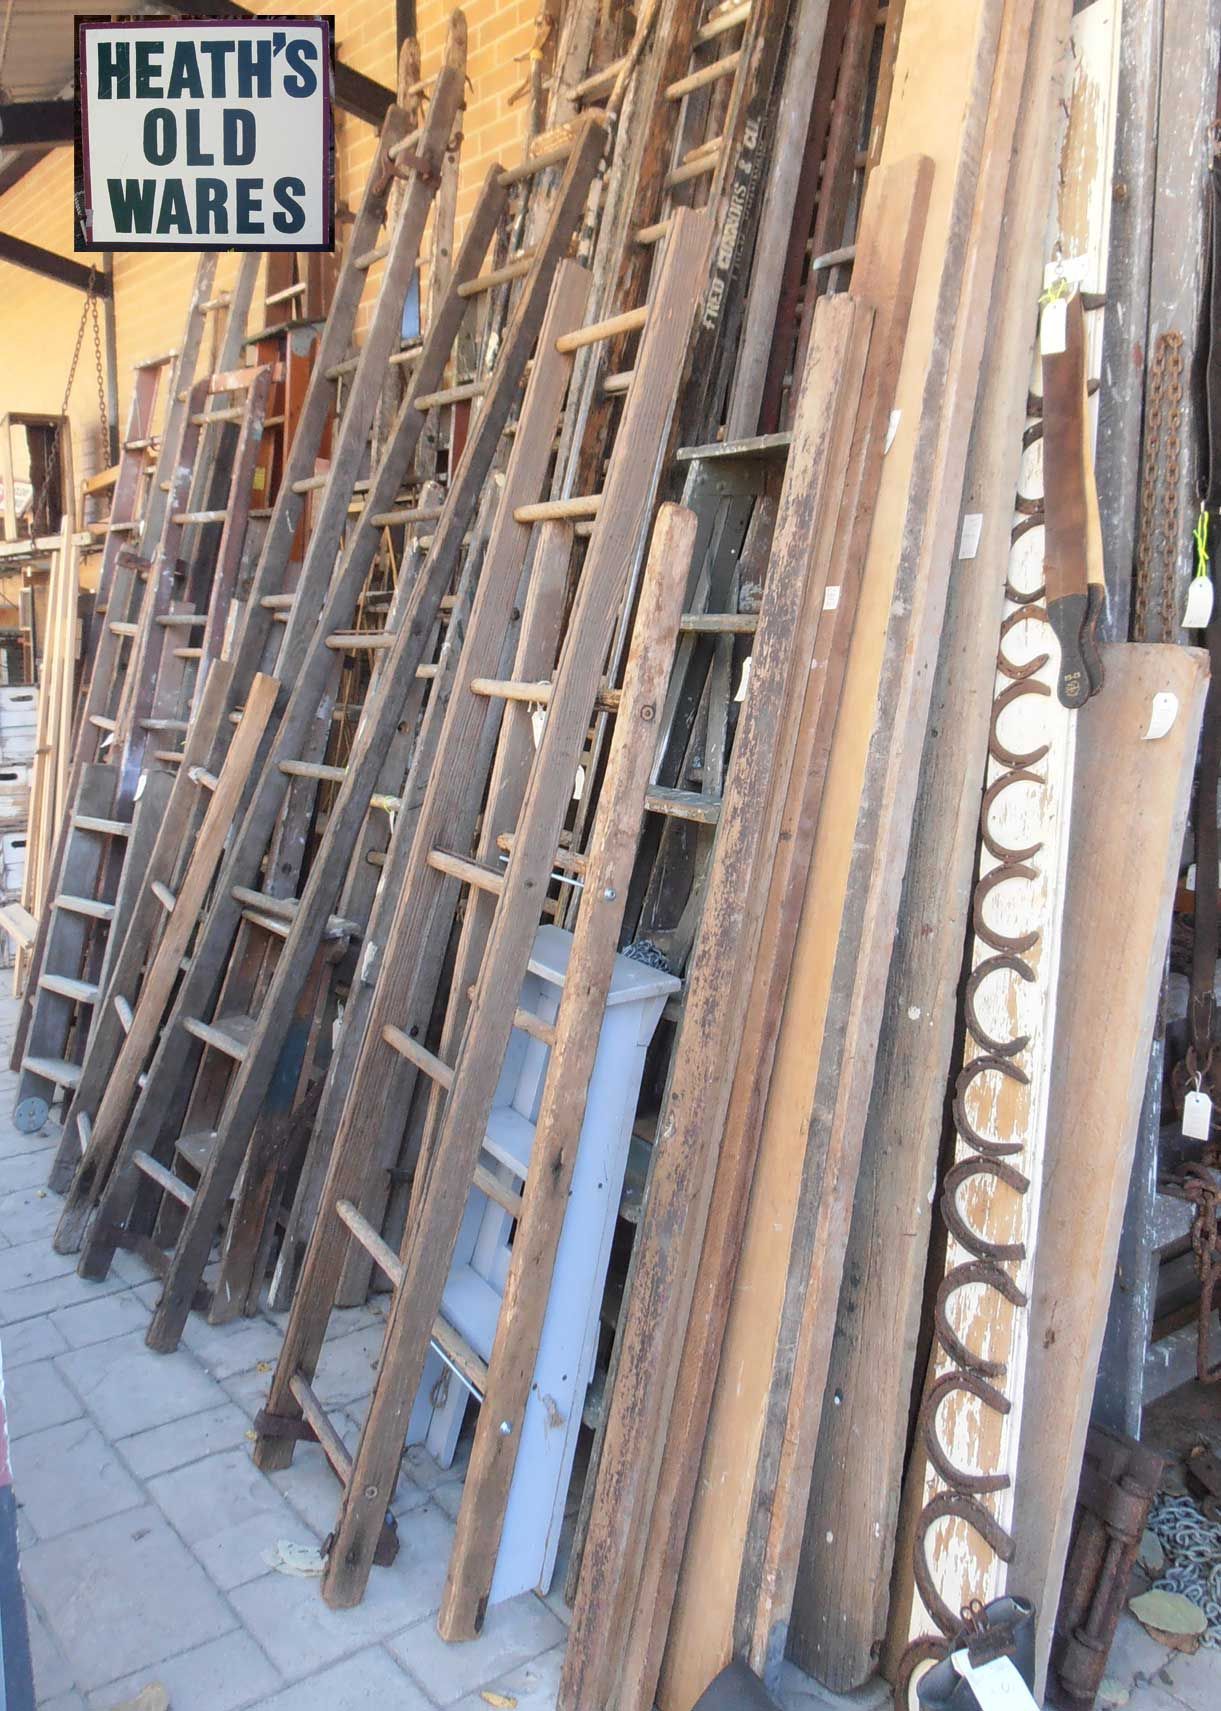 Best Antique And Vintage Ladders For Sale At Heaths Antiques 640 x 480